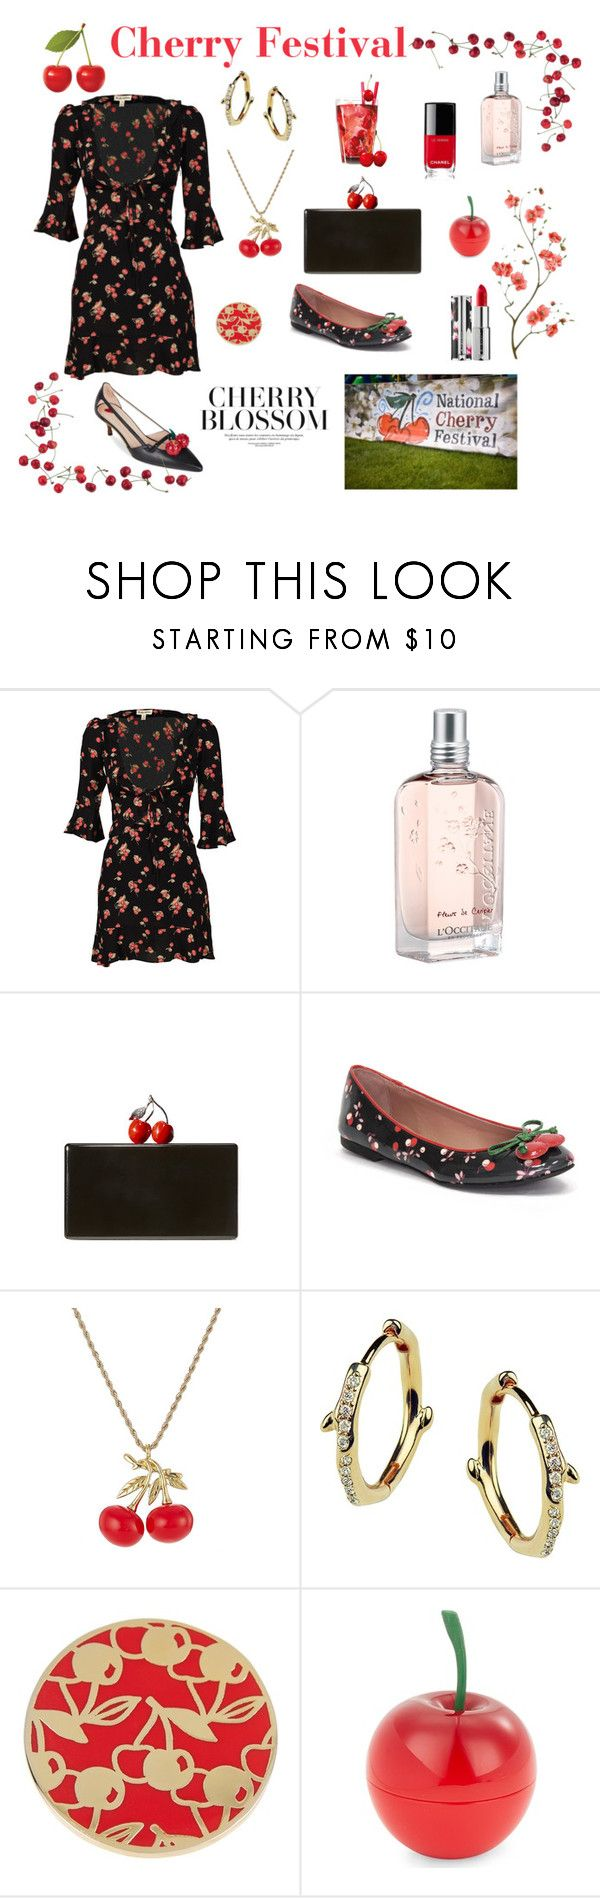 """Cherry Inspired"" by marnie1979 ❤ liked on Polyvore featuring For Love & Lemons, L'Occitane, Edie Parker, Valentino, Kenneth Jay Lane, Shaun Leane, Ariella Collection, Tony Moly and Chanel"